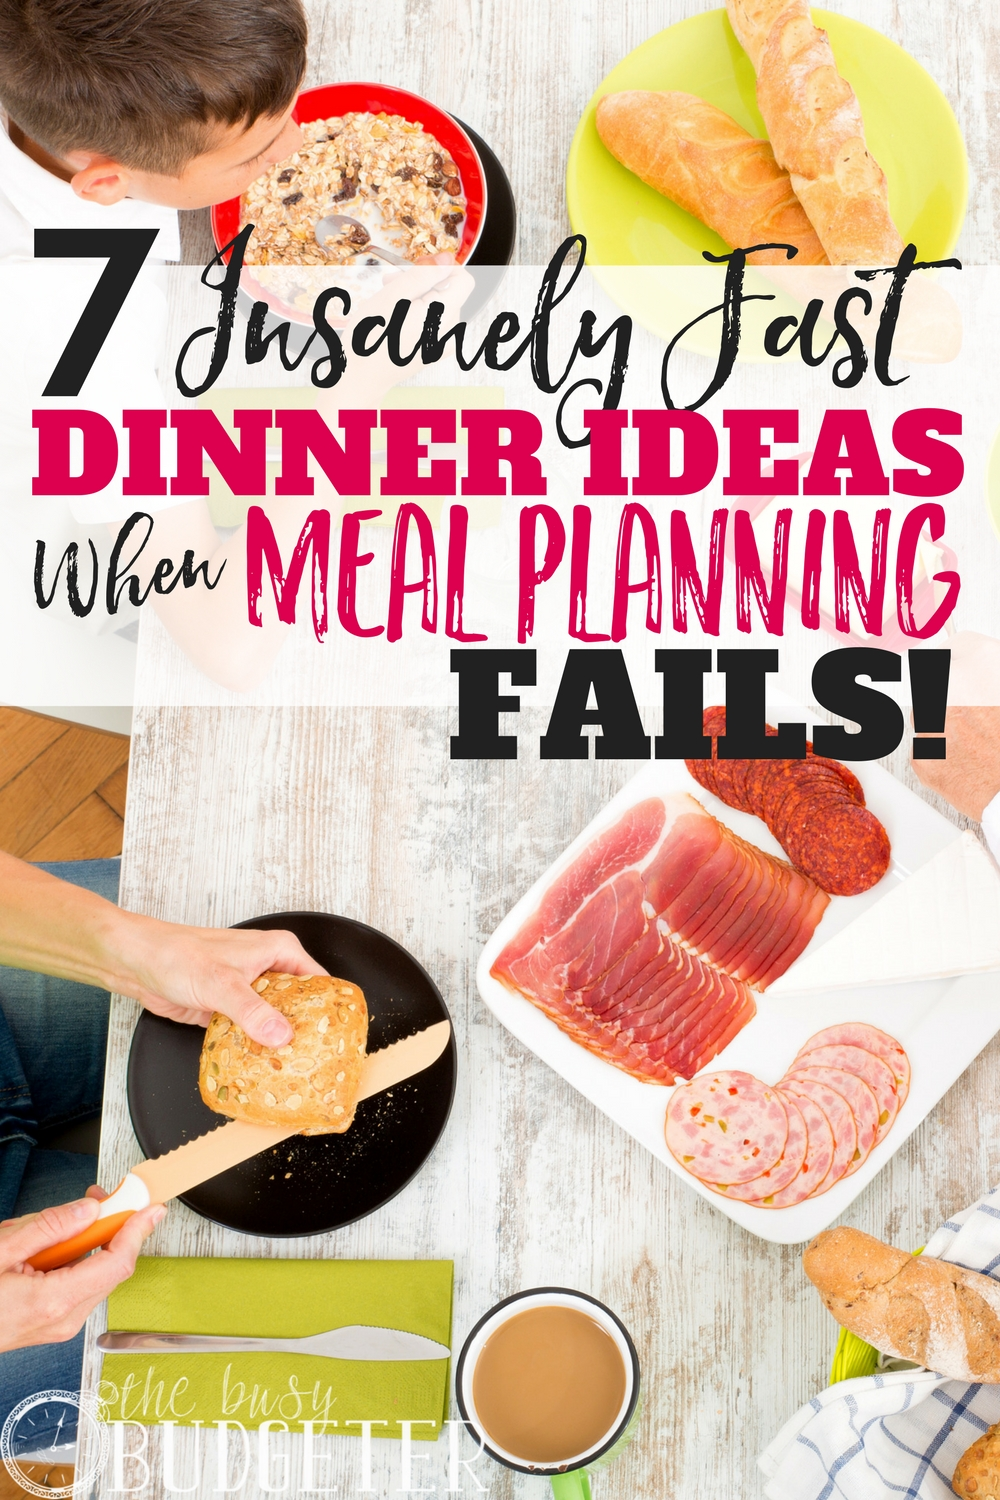 """We've all had that night when organization fails, meal planning fails, and everyone is hungry. These fast dinner ideas were so simple and easy to throw together, my kids are actually asking for more, especially on """"super bowl"""" night!!"""